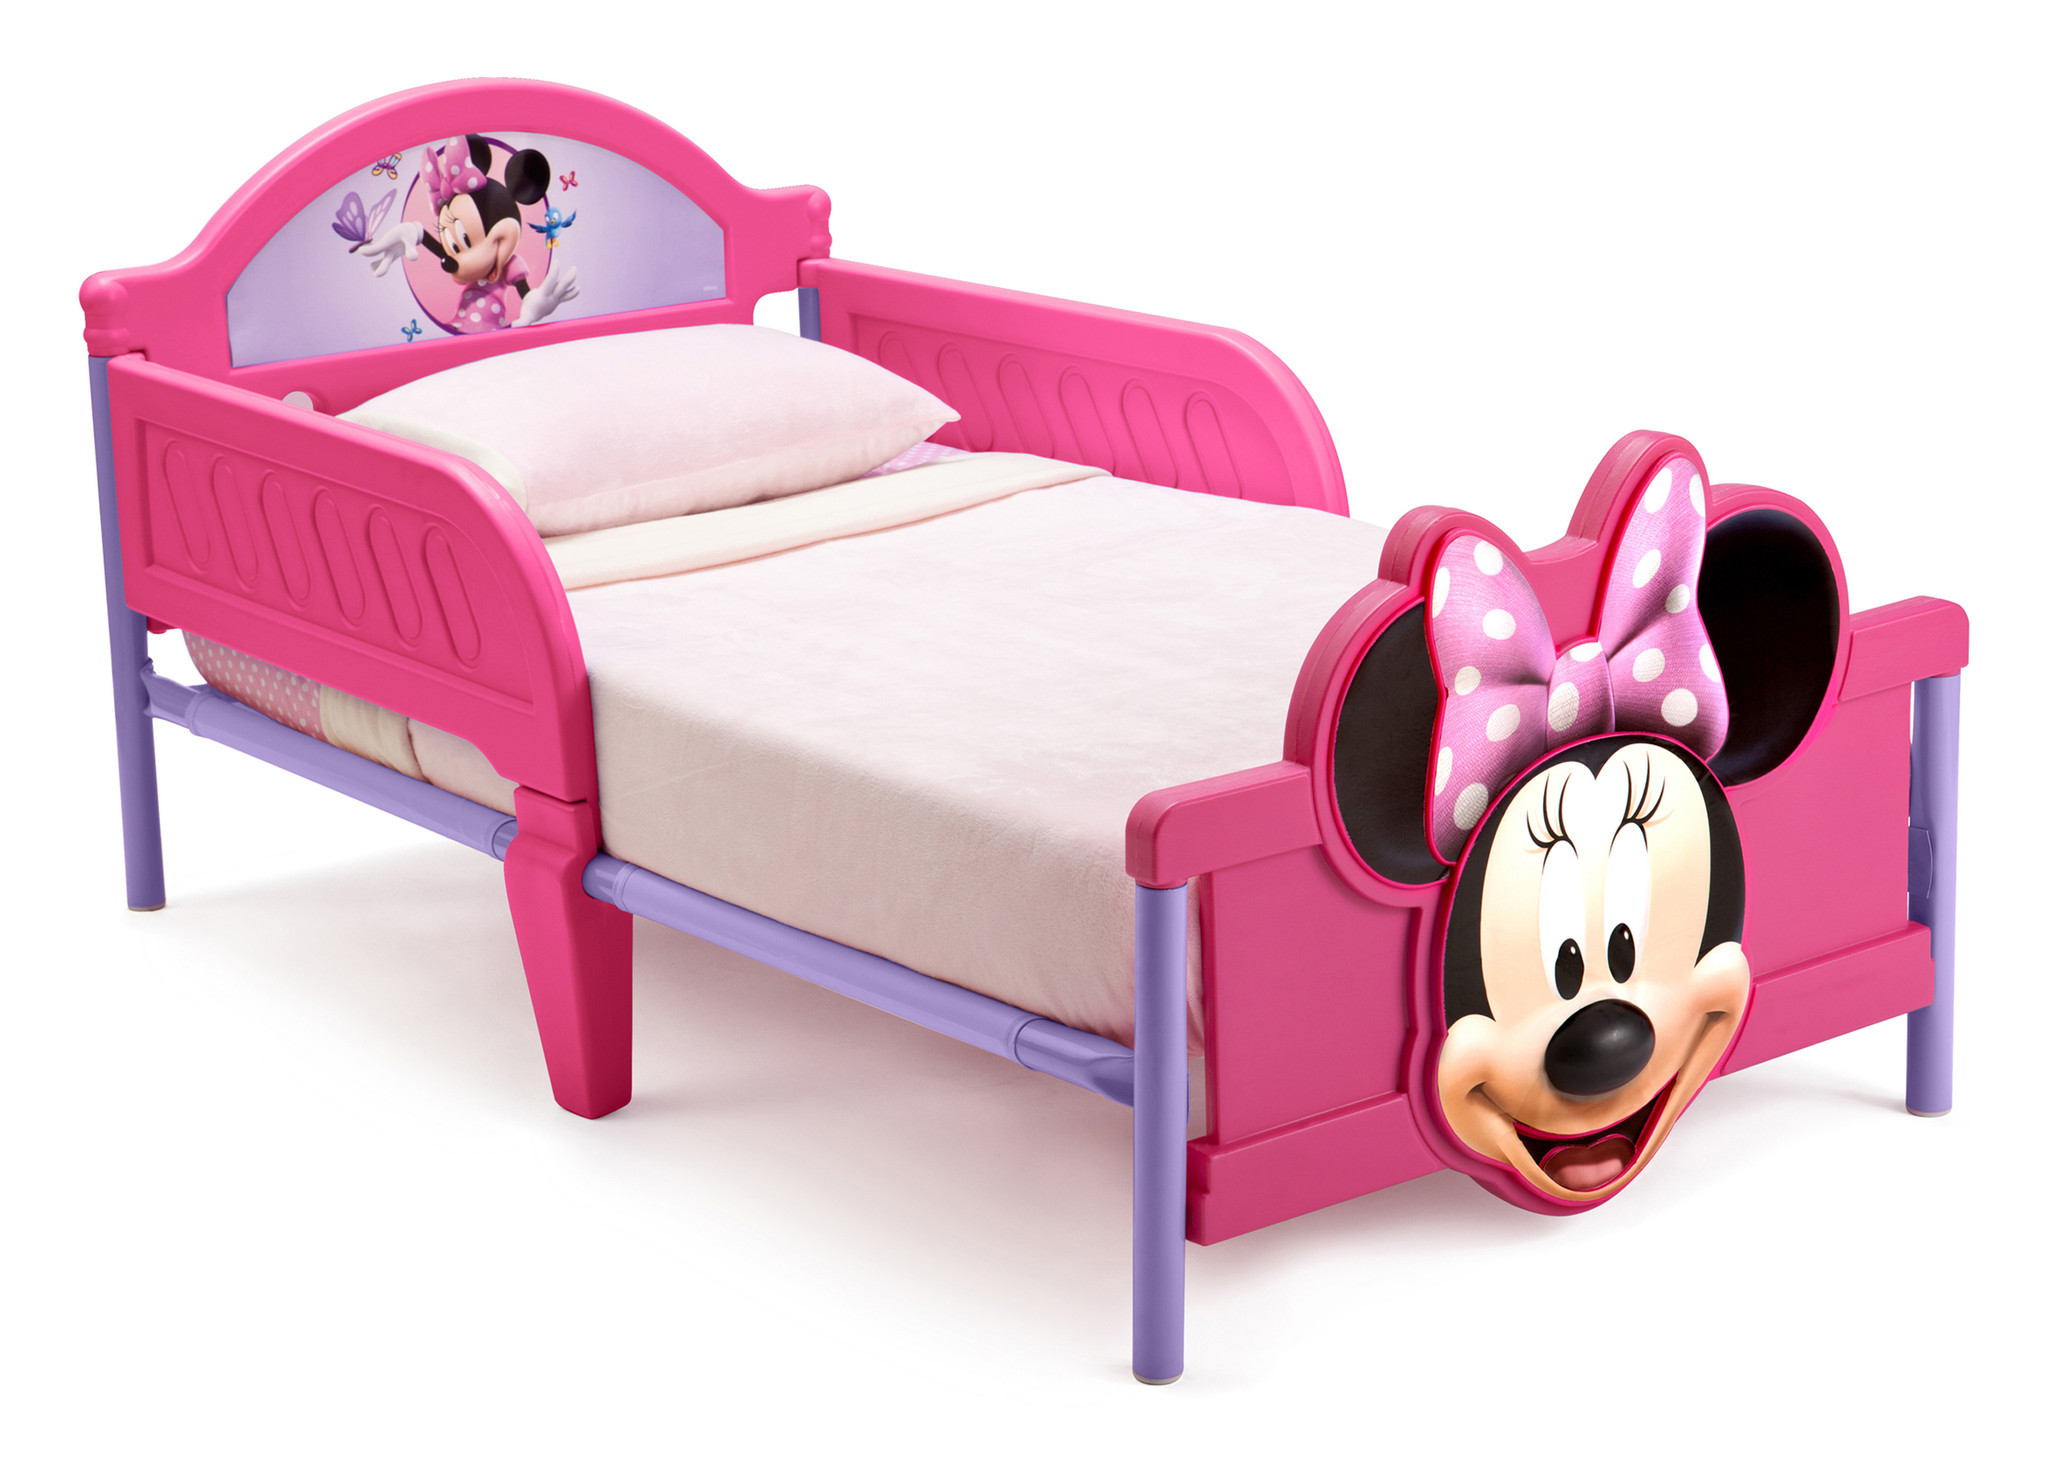 Toddler Minnie Mouse Bed